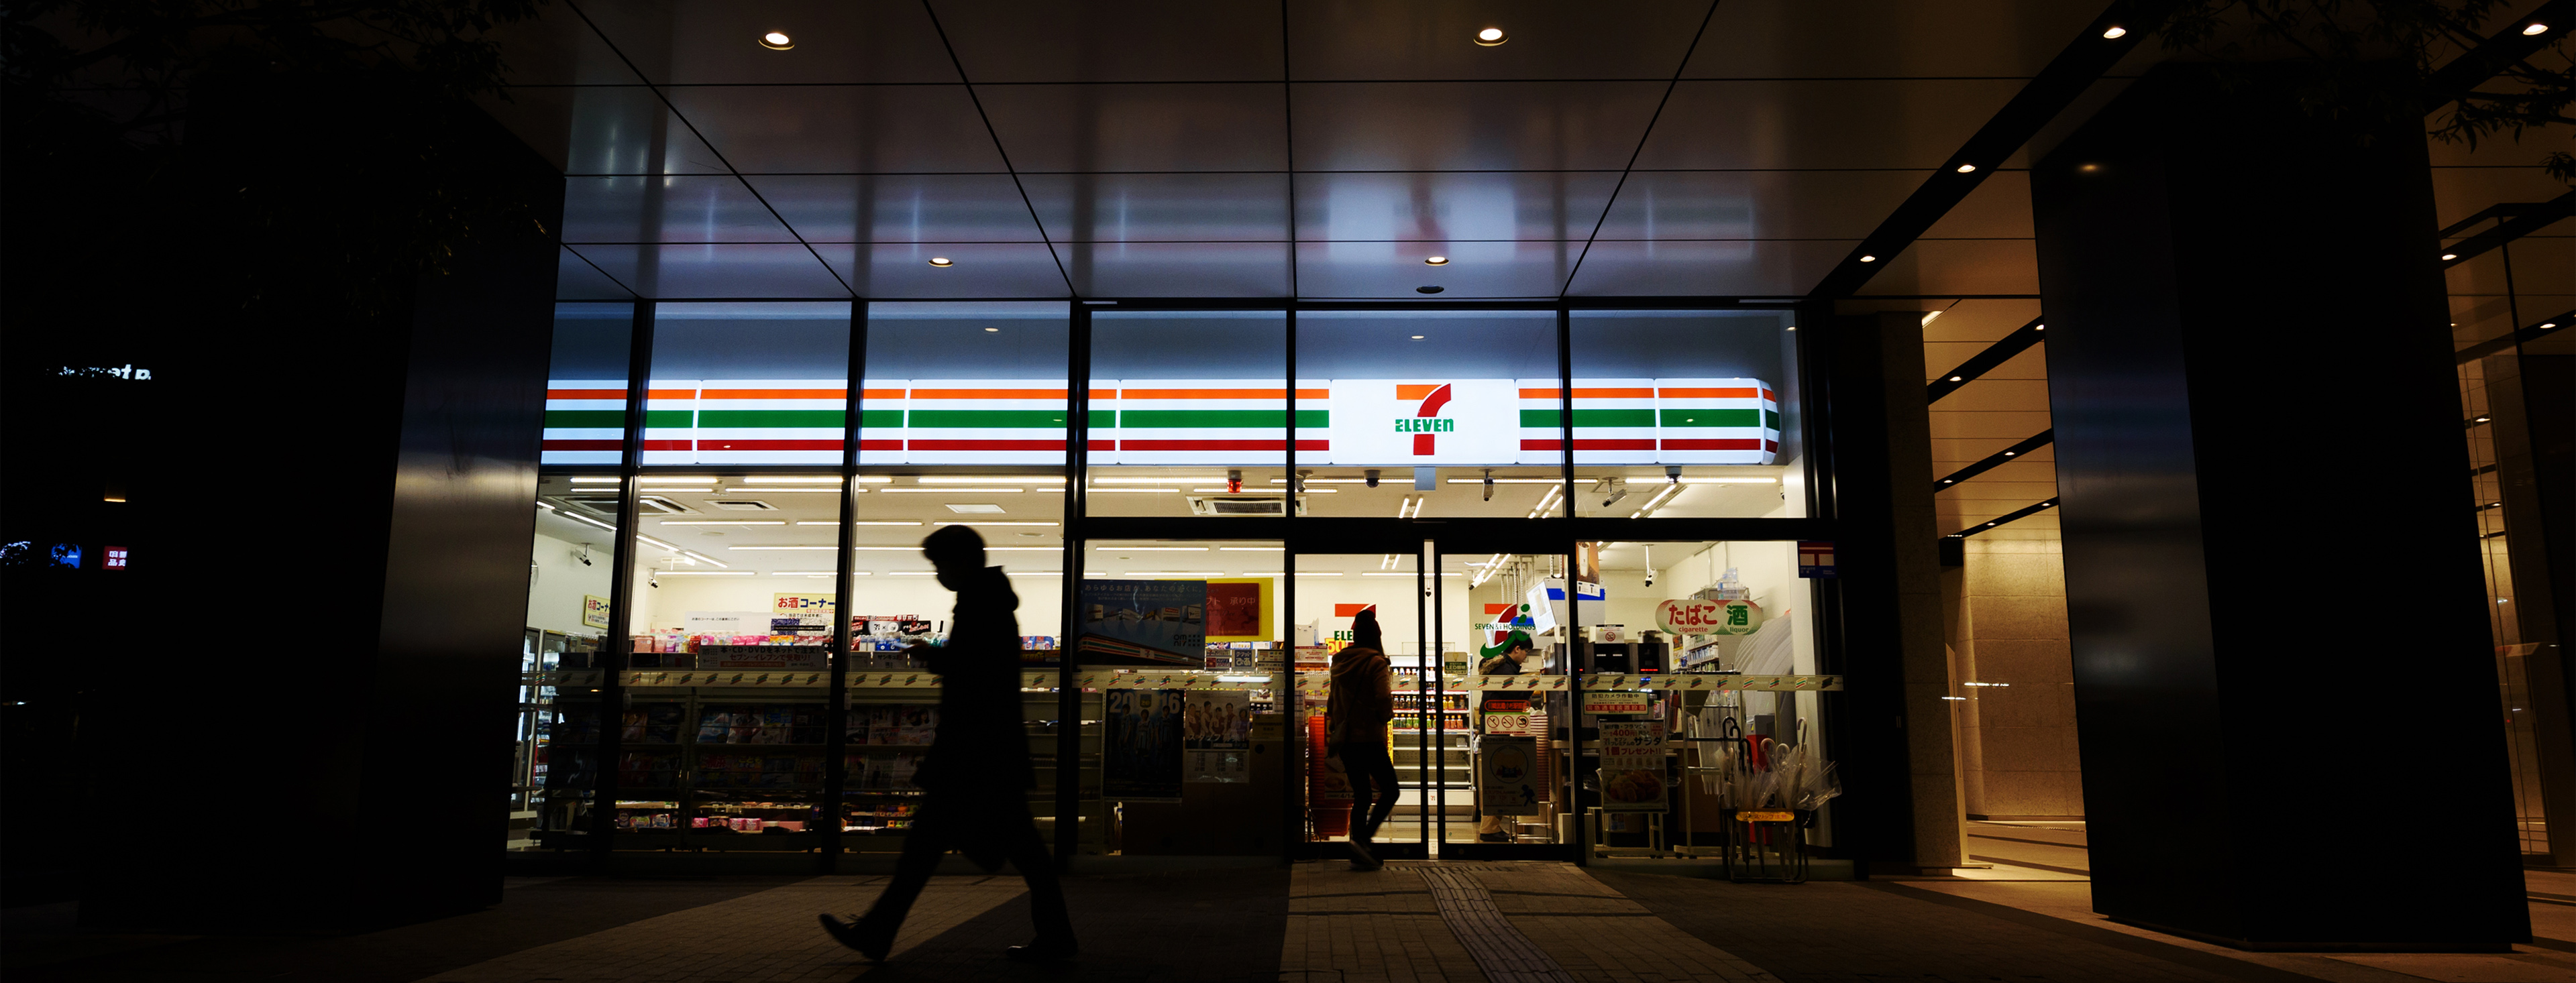 7-Eleven Convenience Stores Ahead Of Seven & I Holdings Co. Earnings Announcement